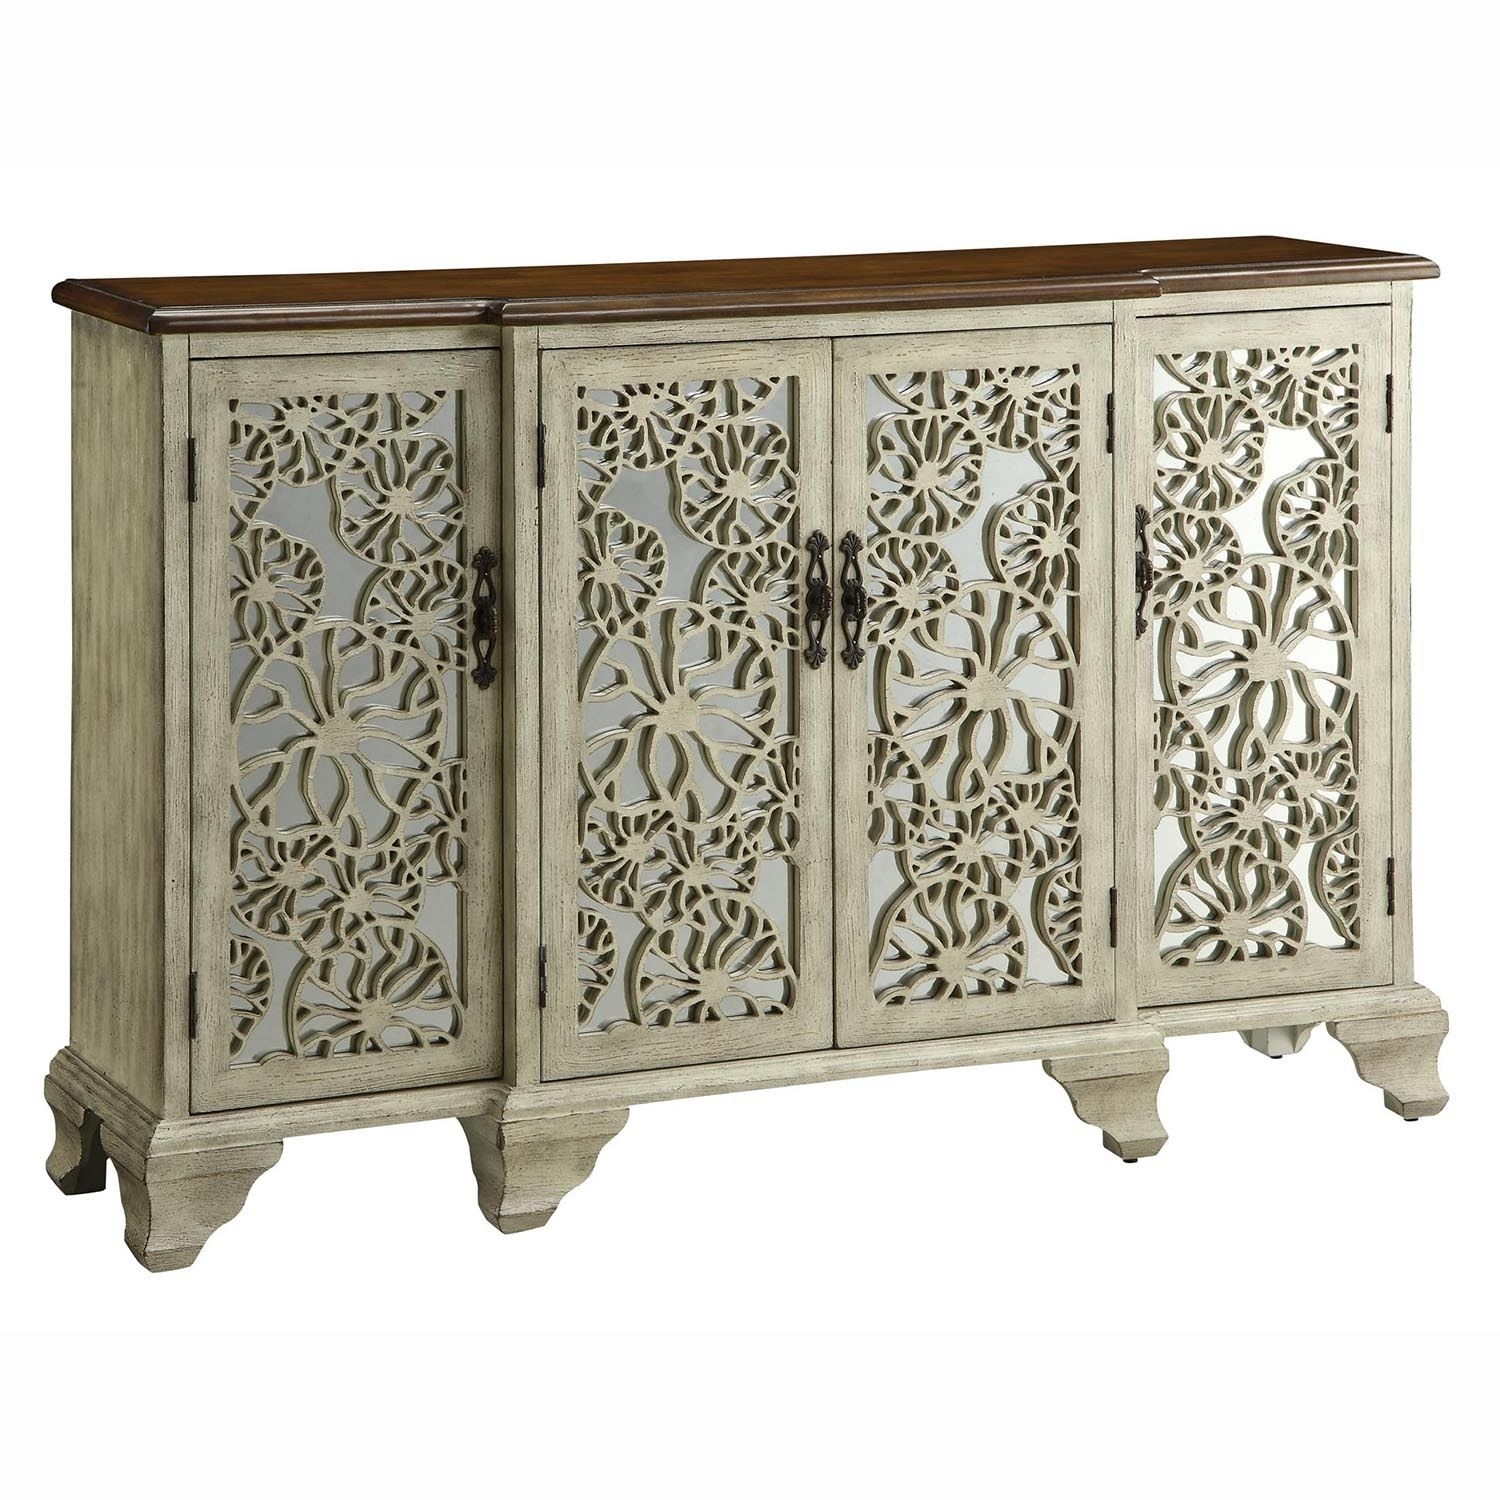 Gorgeous Antique White Wood 4 Mirrored Doors Sideboard Buffet within Aged Mirrored 2 Door Sideboards (Image 14 of 30)